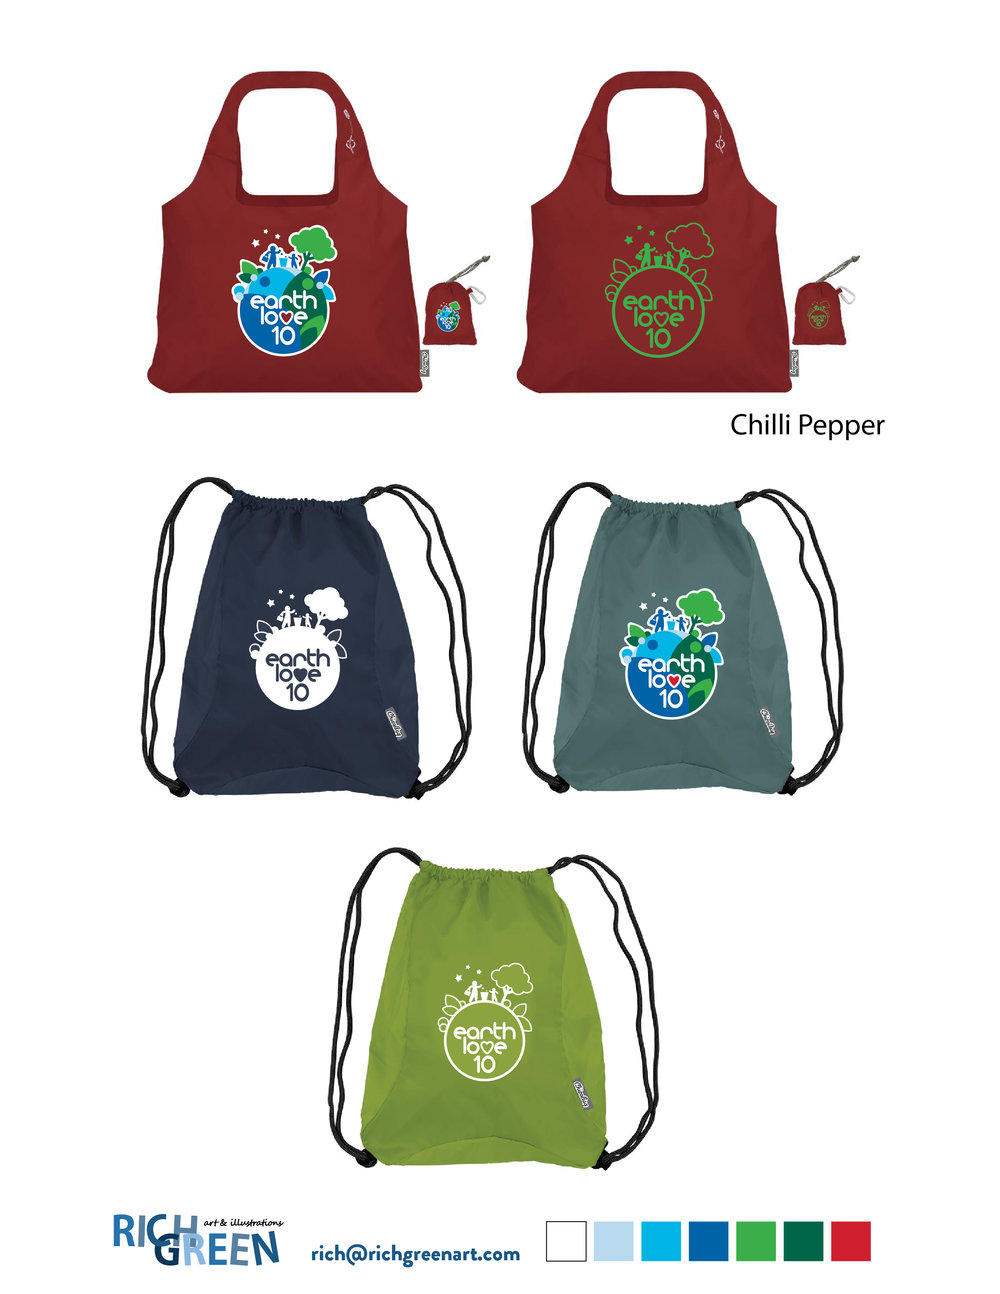 Earth Love 10 product mock ups 03-06.jpg